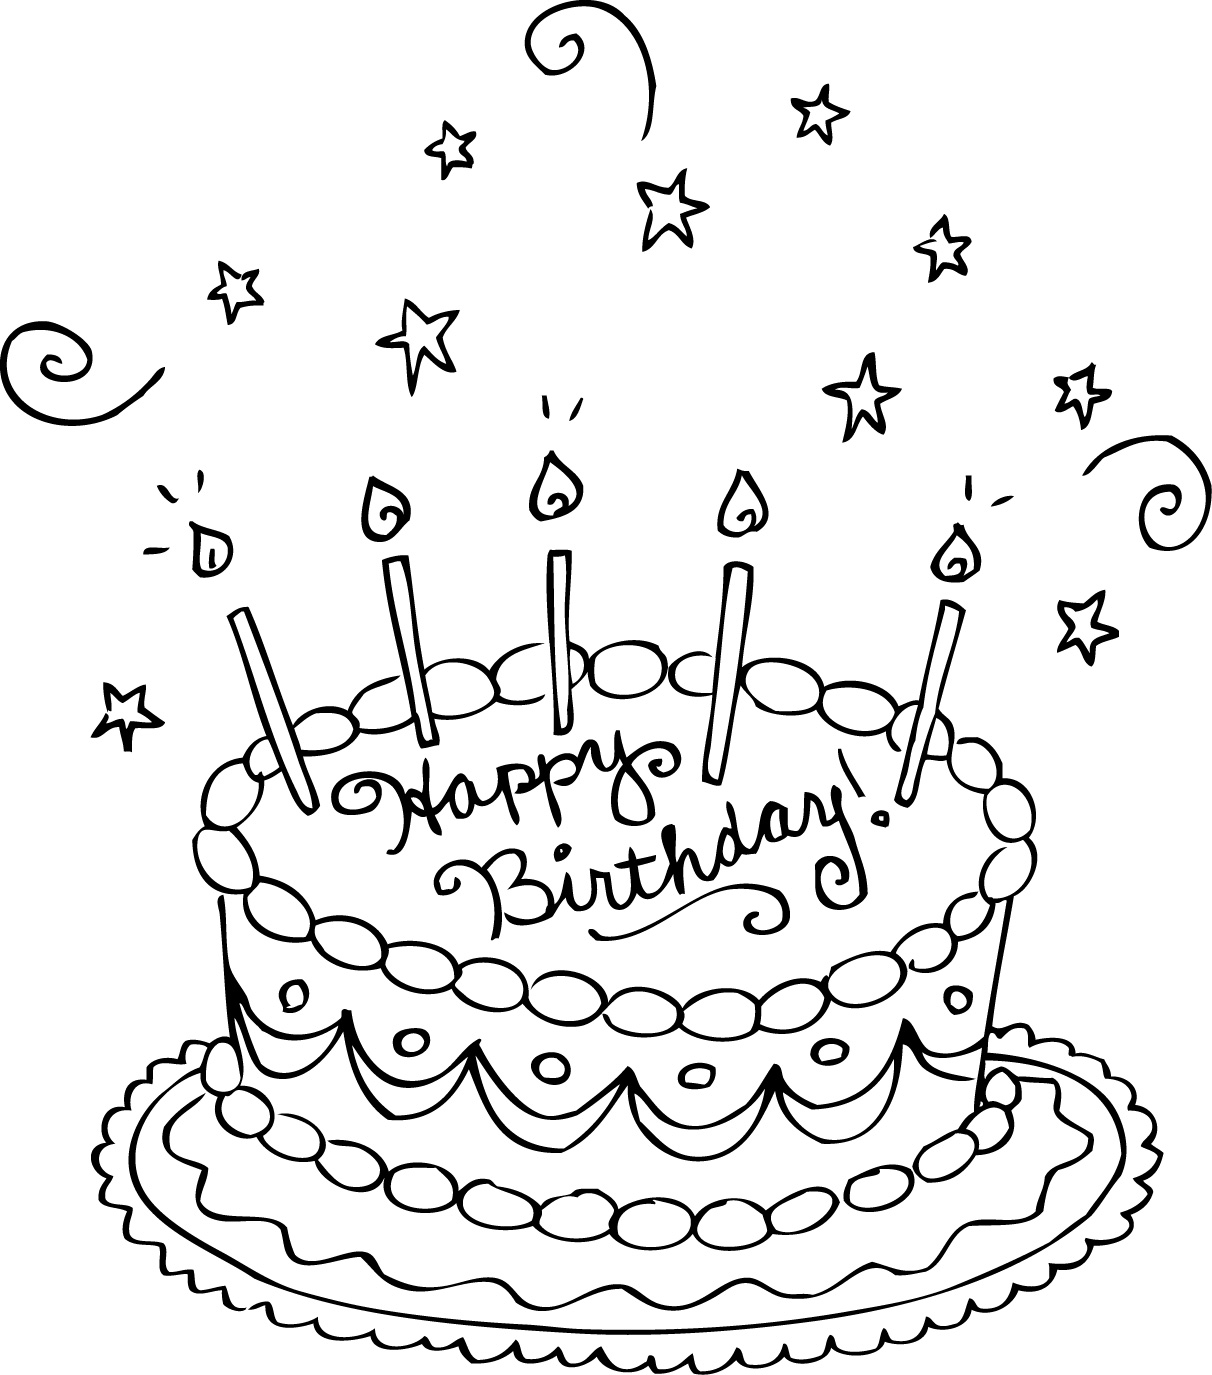 coloring printable birthday cards free a homemade birthday card worksheets and printables cards printable free birthday coloring